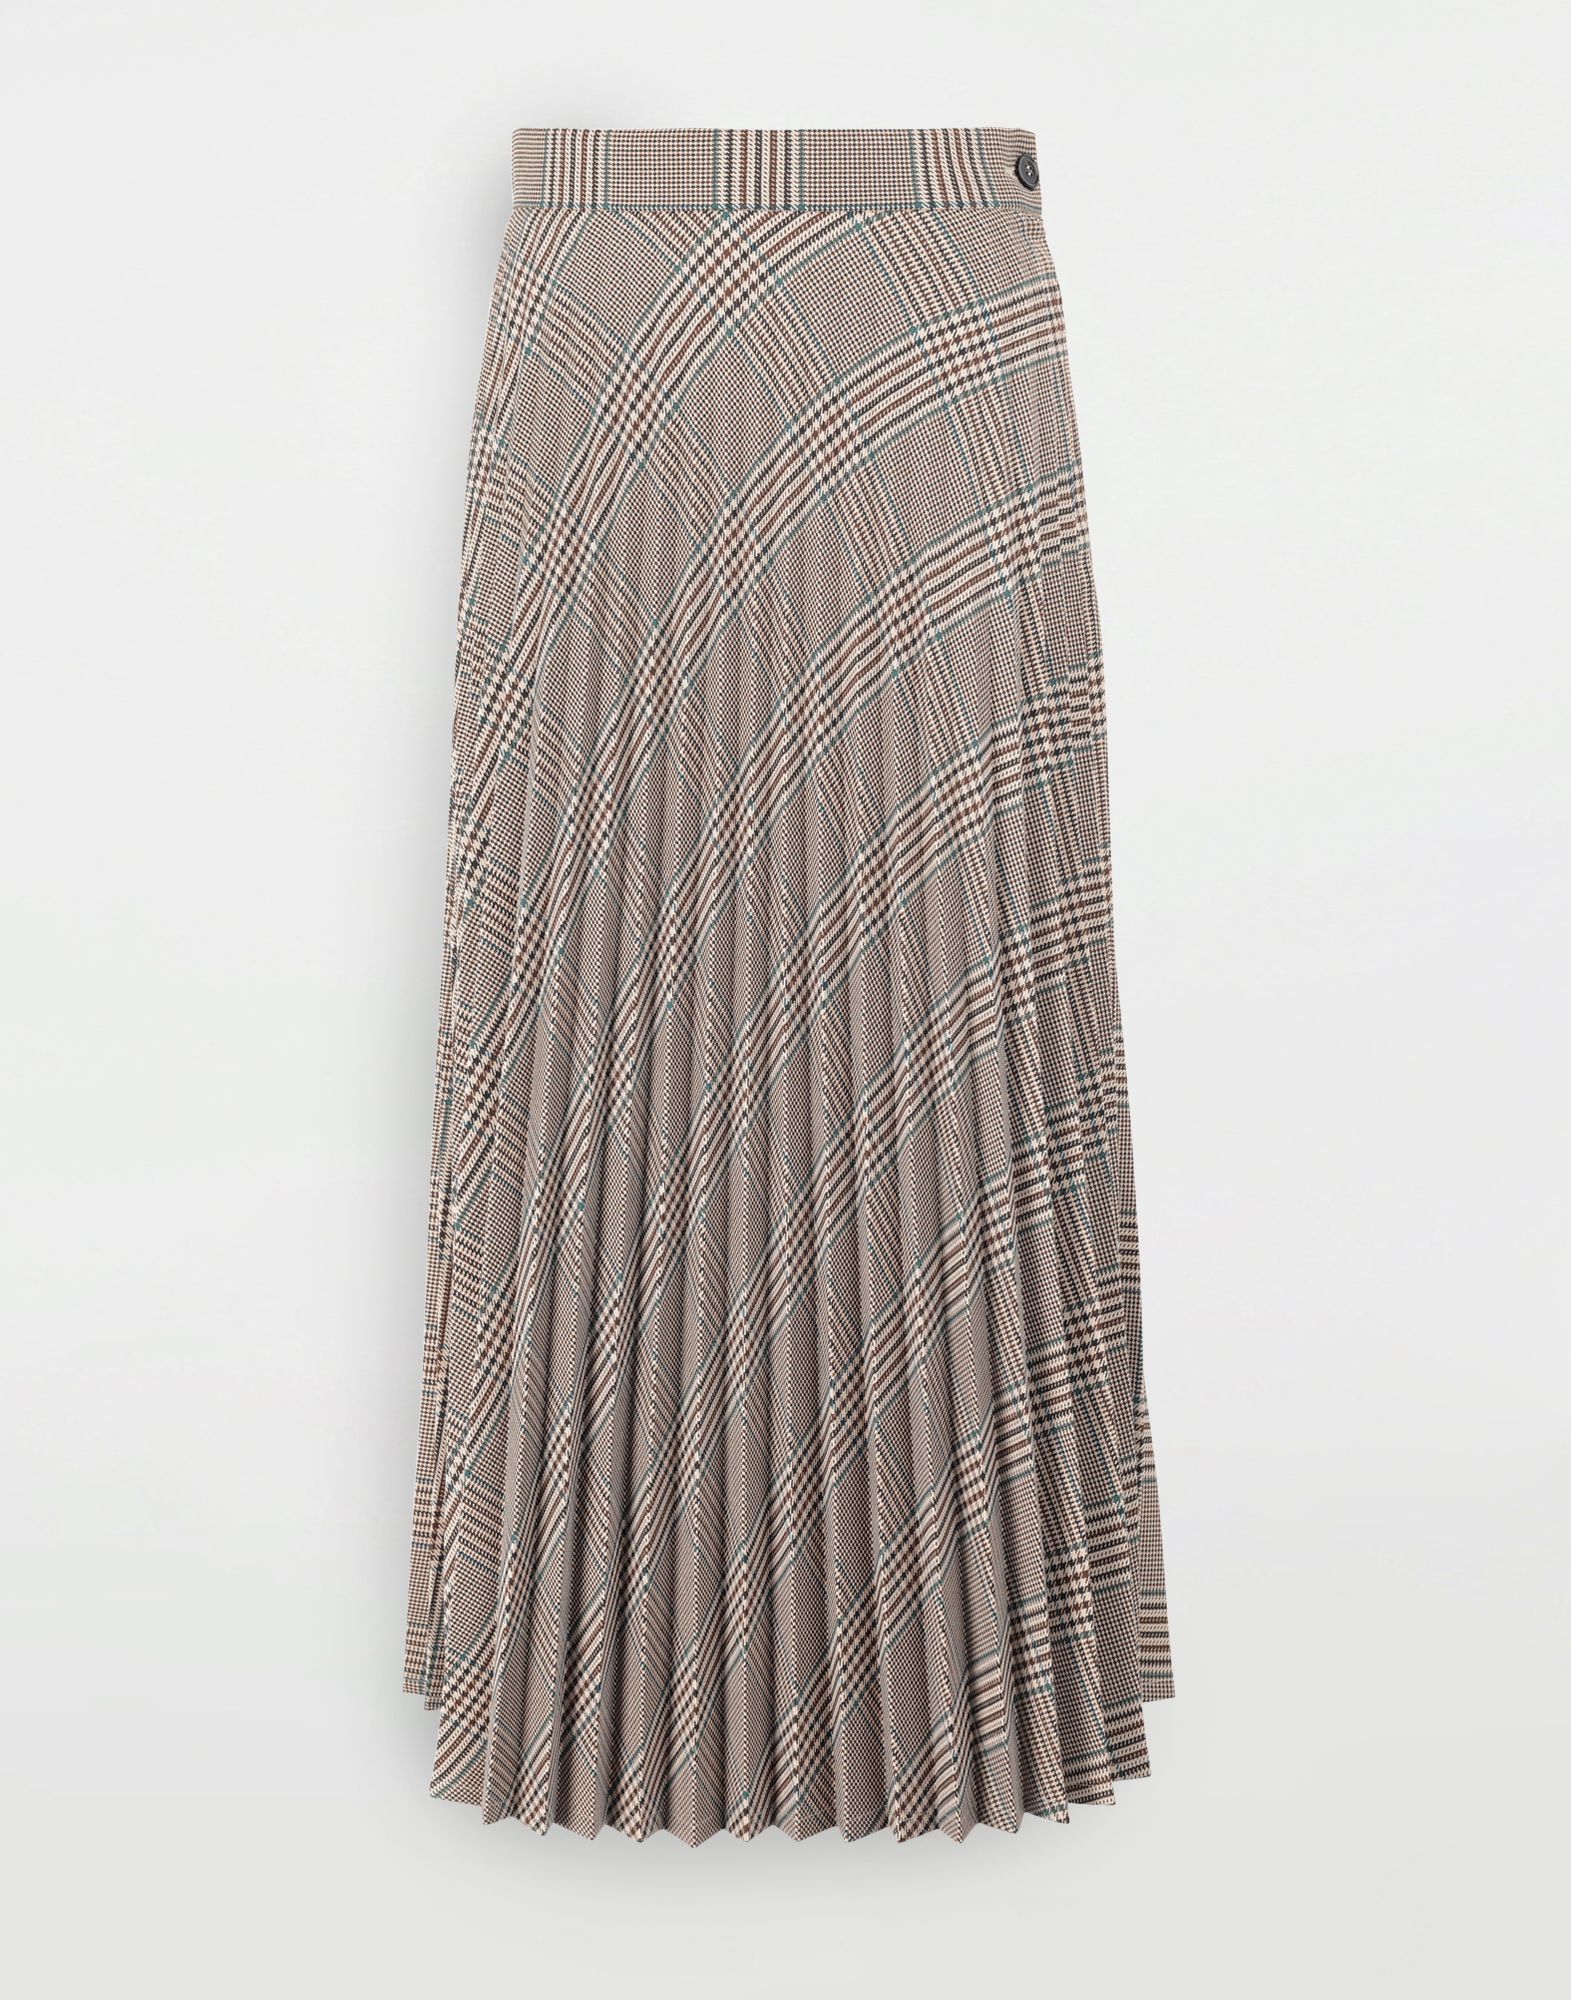 MM6 MAISON MARGIELA Checked pleated skirt 3/4 length skirt Woman f